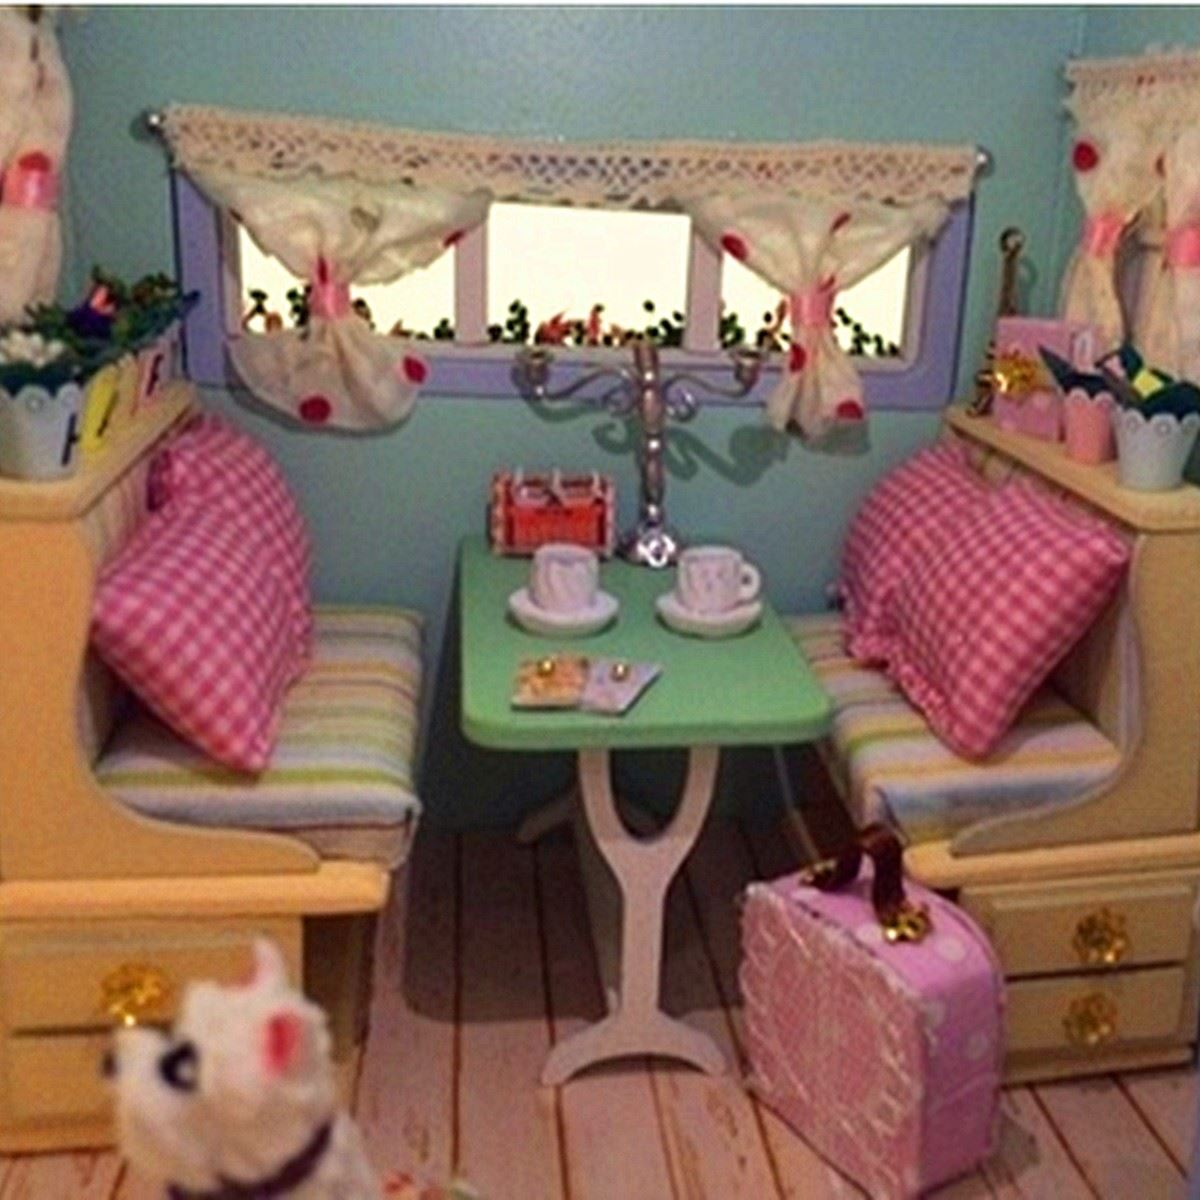 Diy dollhouse miniature wooden assembled with voice activated light diy dollhouse miniature wooden assembled with voice activated light music handmade kits building model travel caravan for girls in doll houses from toys solutioingenieria Choice Image